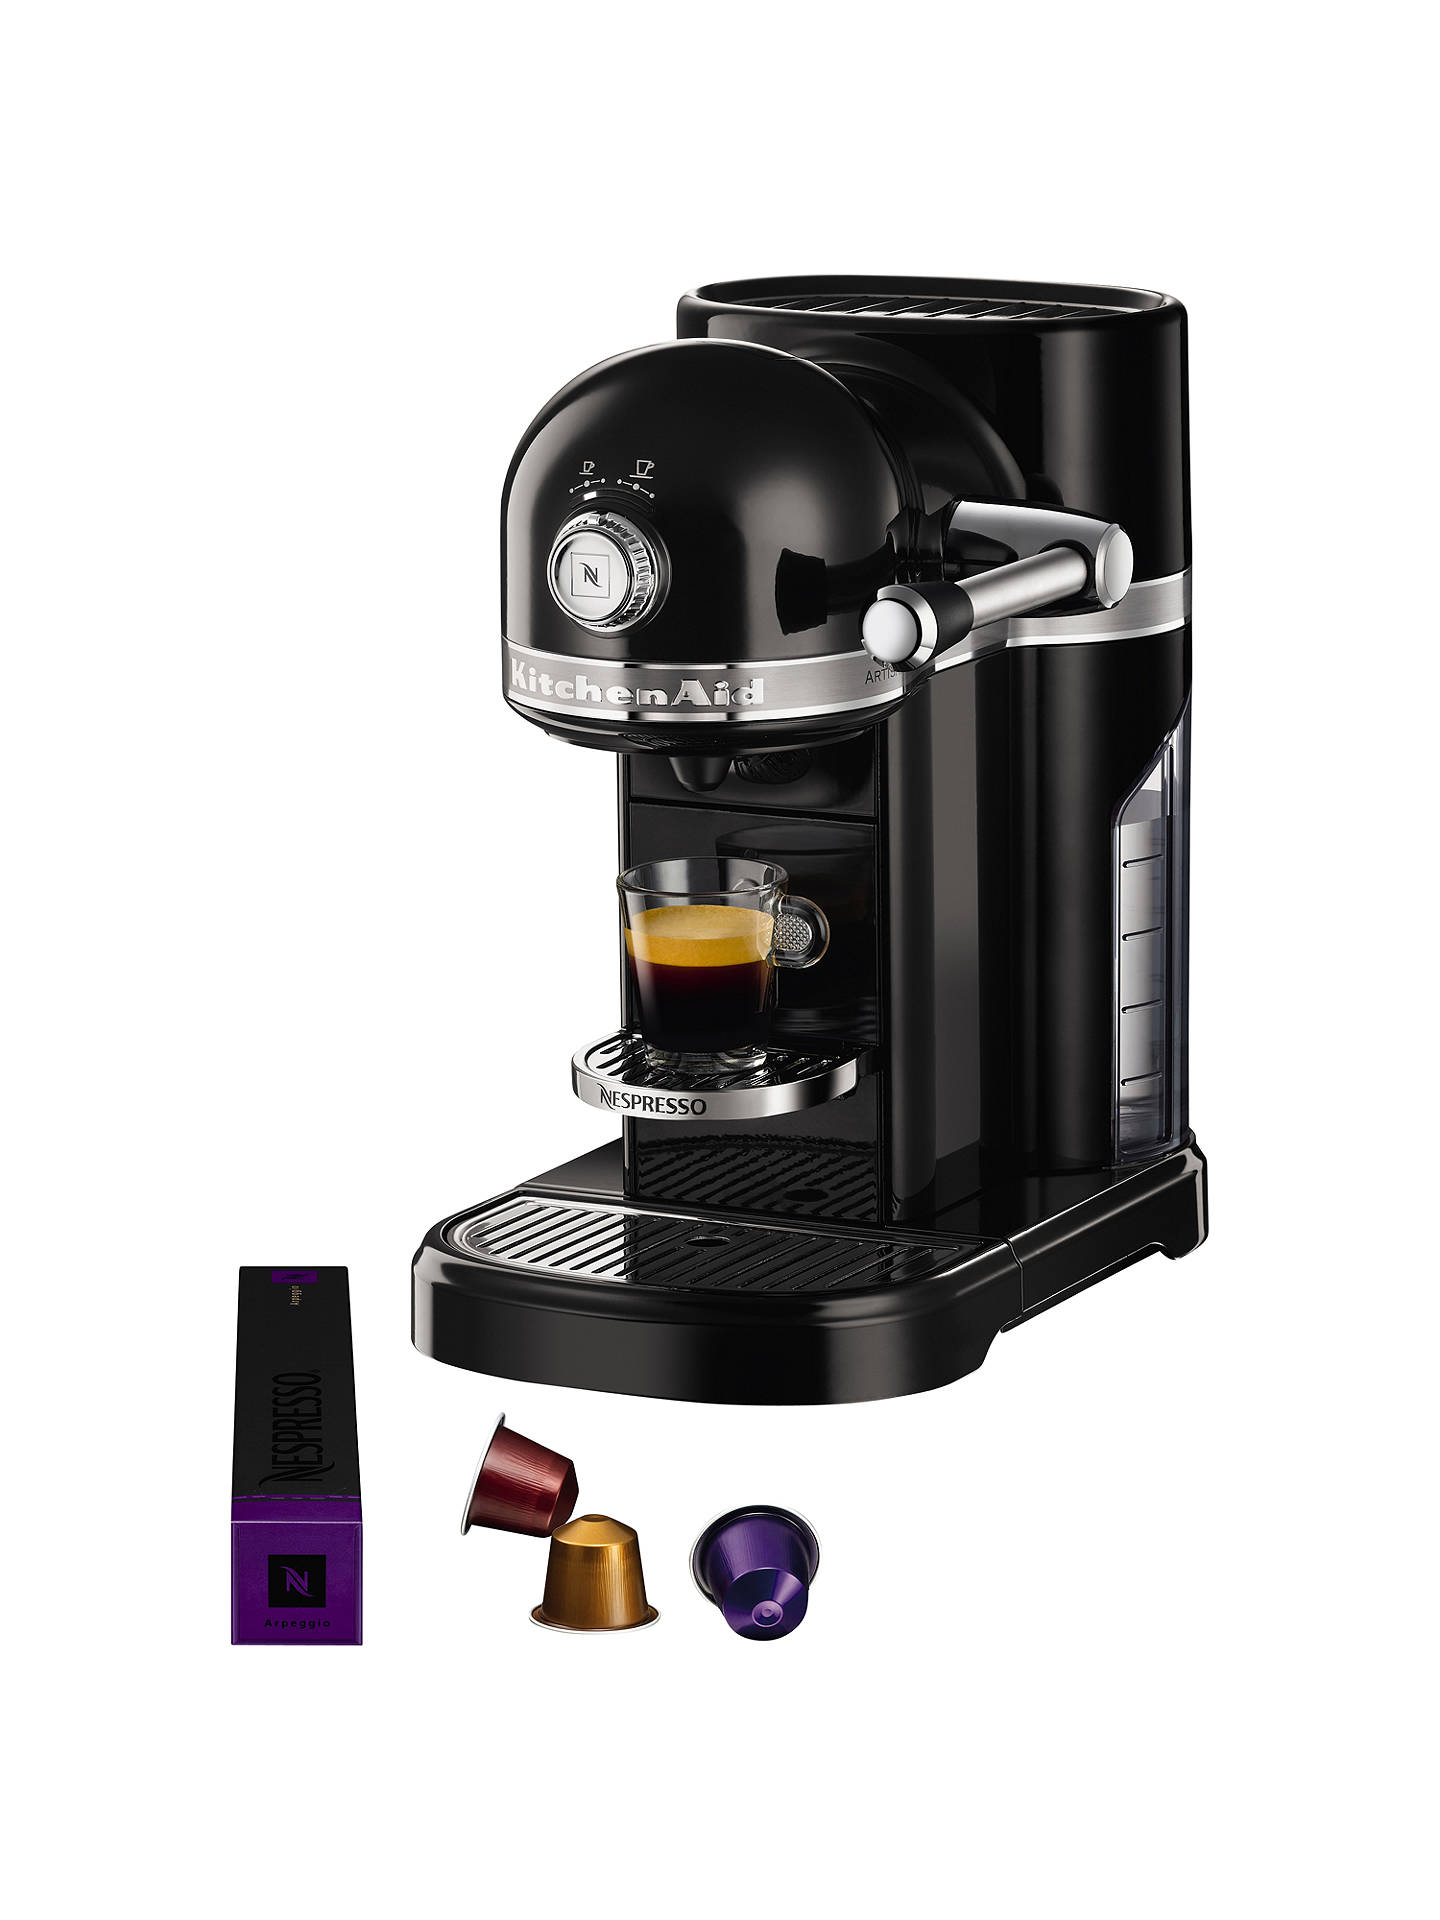 Nespresso Artisan Coffee Machine By Kitchenaid At John